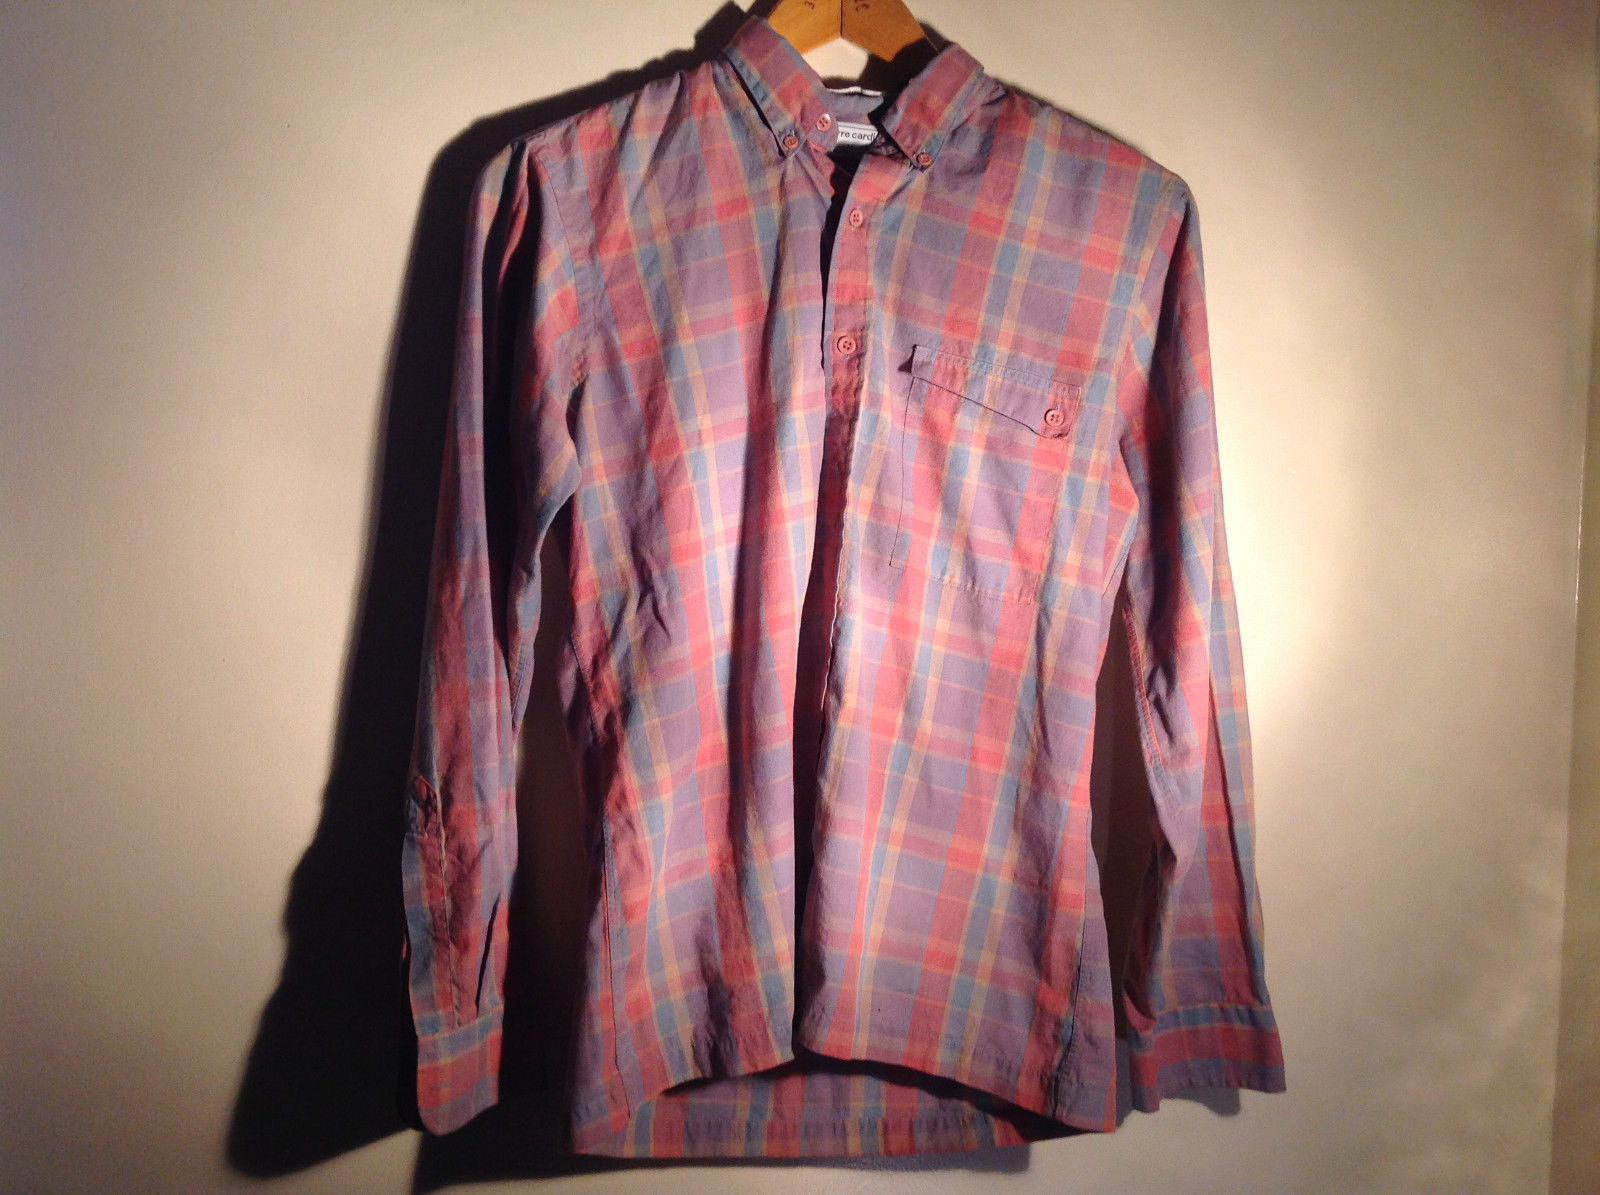 Pierre Cardin Multicolored Button Up Long Sleeve Collared Shirt Size Medium